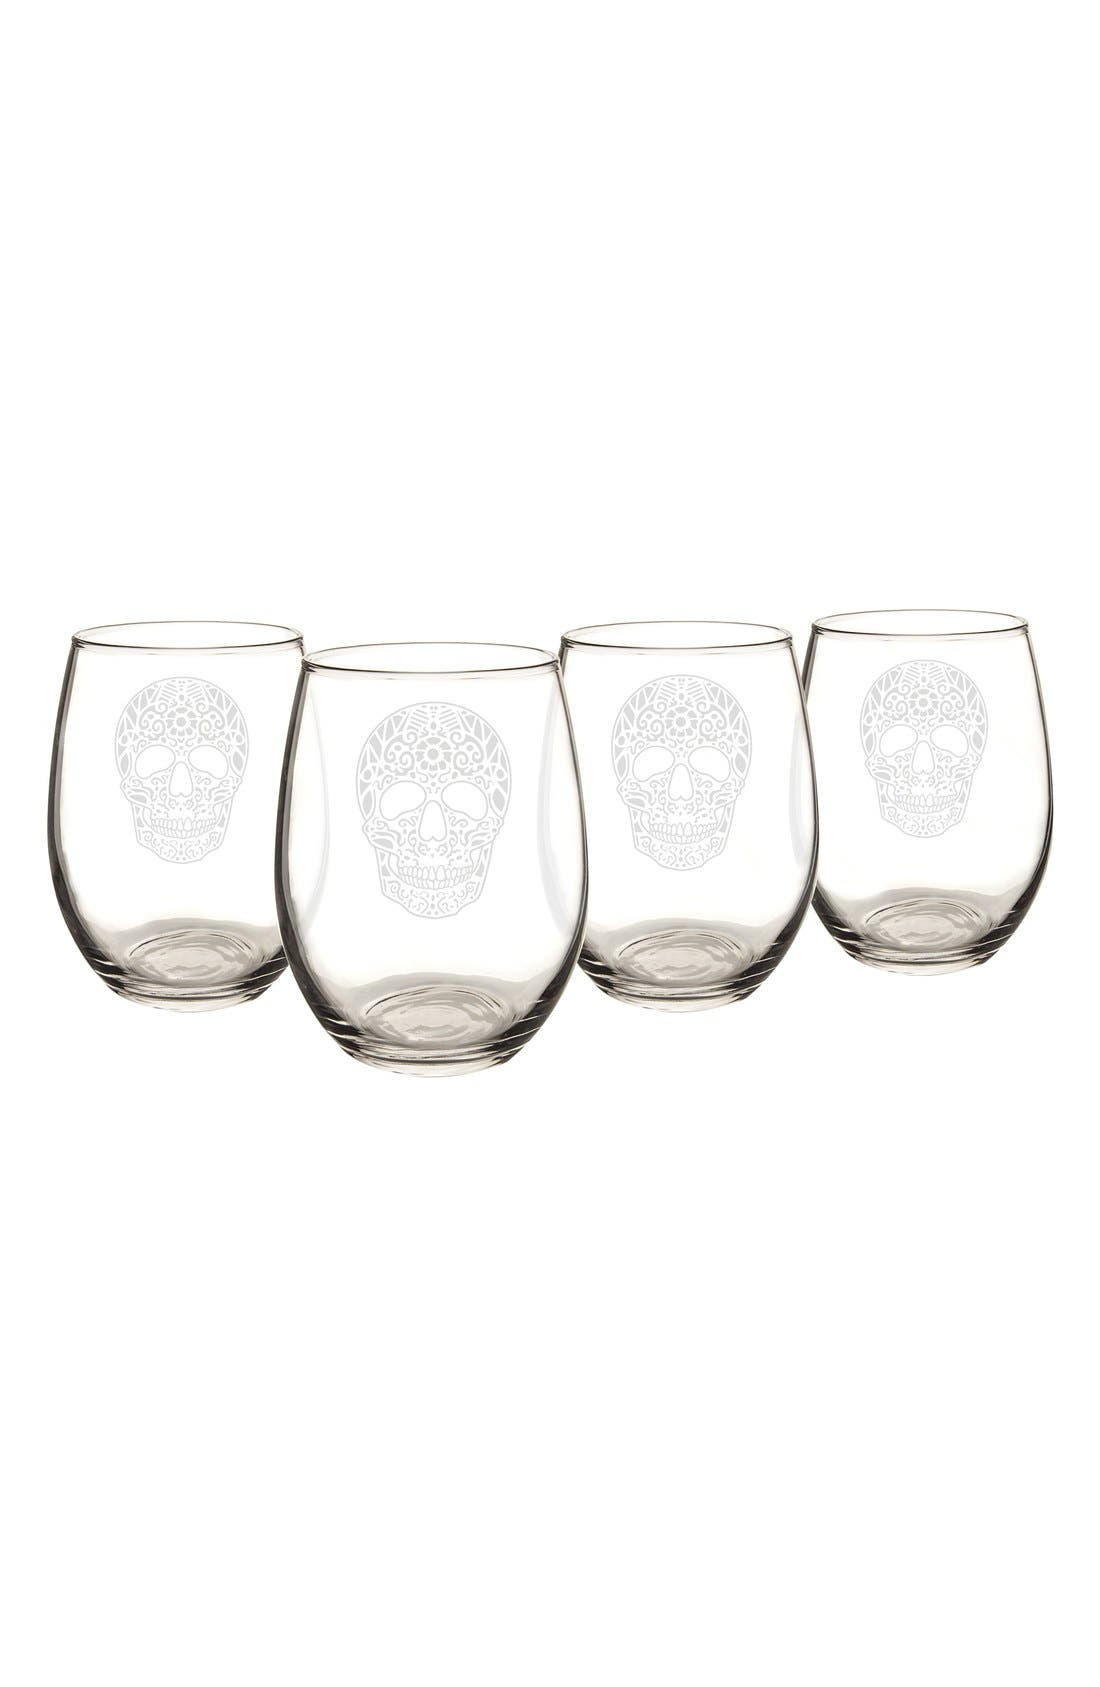 Sugar Skulls Set of 4 Stemless Wine Glasses,                         Main,                         color, CLEAR